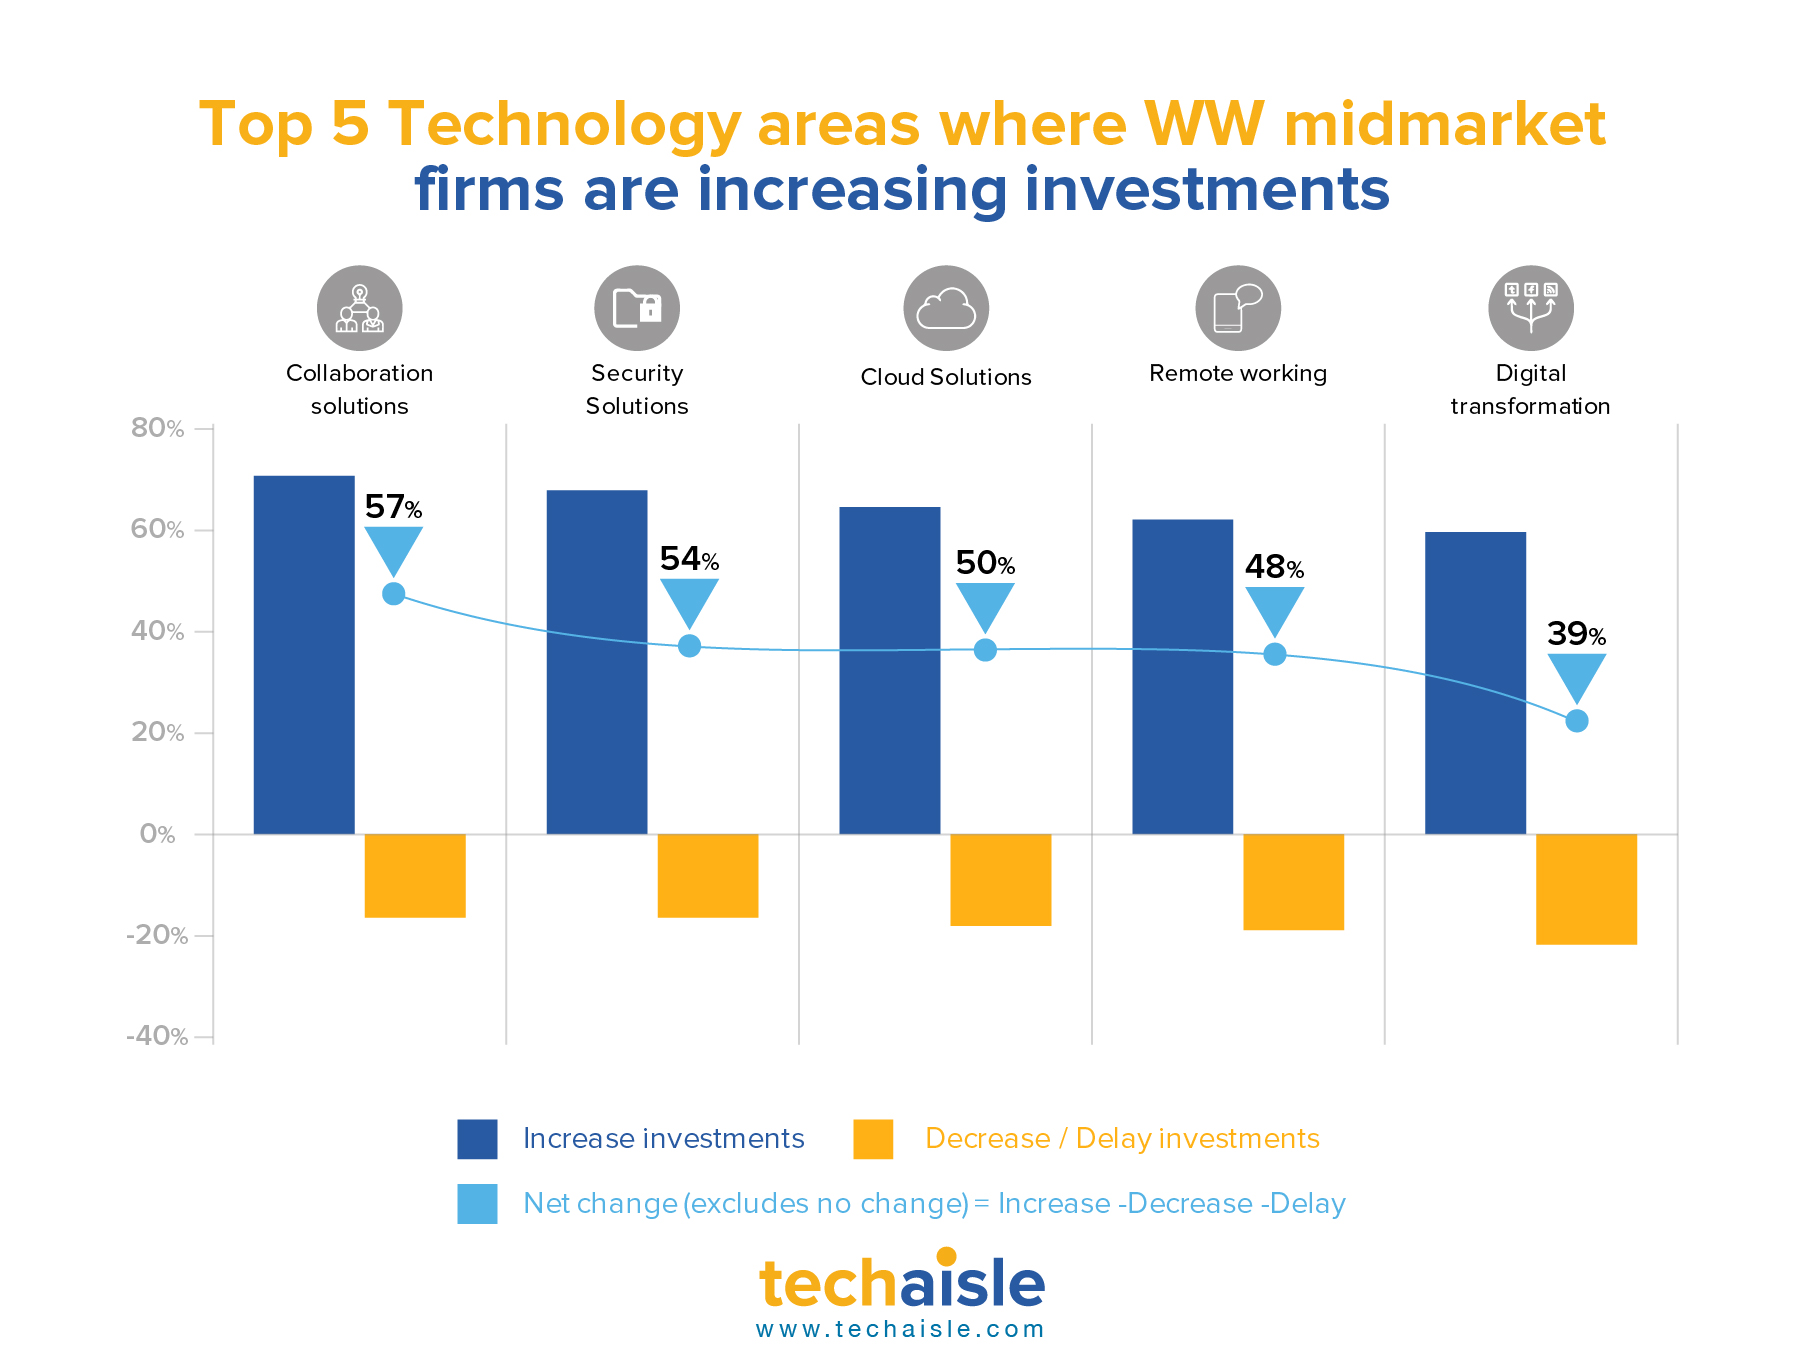 techaisle top 5 technology areas midmarket